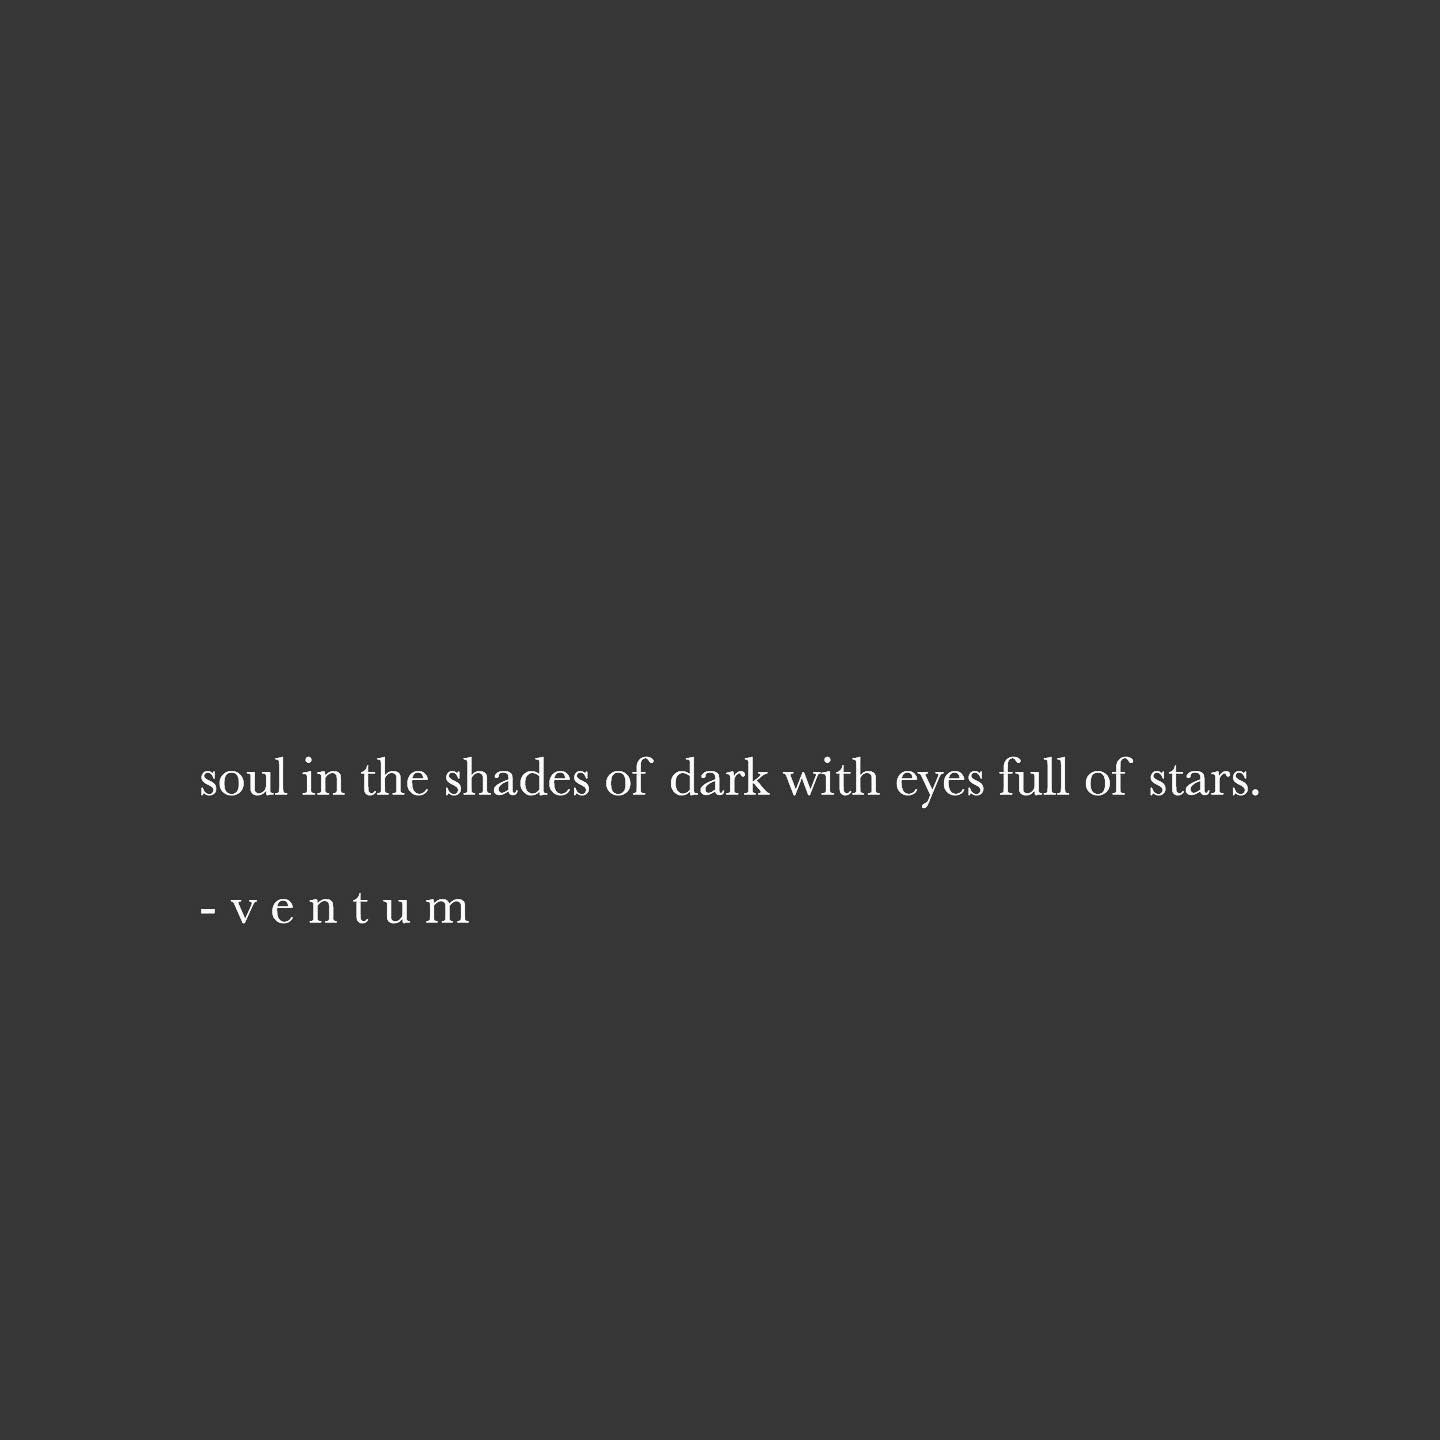 She Wears Her Smile Like The Night Wears The Moon And Its Light Soul In The Shades Of Dark With Eyes Full Of Stars Light Quotes Shade Quotes Dark Quotes